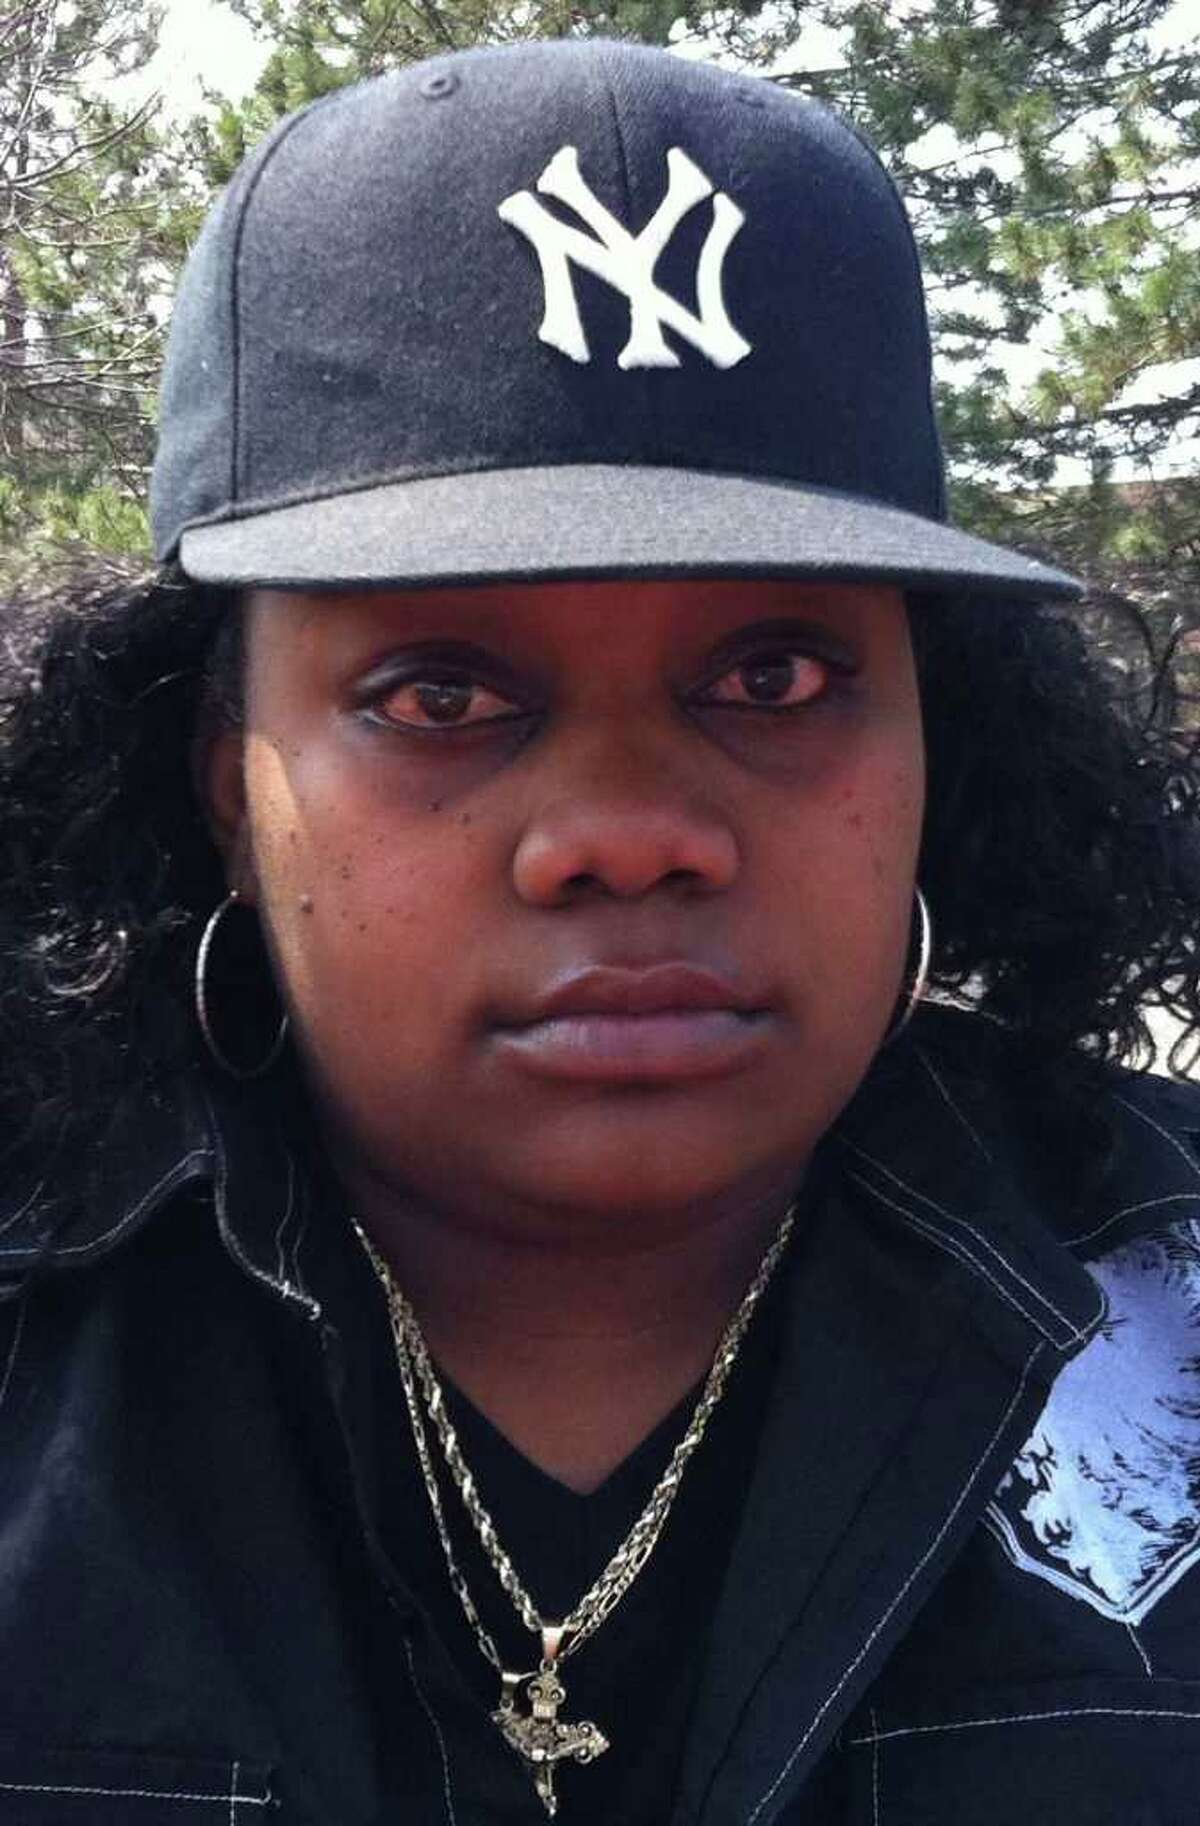 Tanya McDowell, 33, is the mother of 5-year-old Justin Paches. McDowell, a Bridgeport, Conn. native who is homeless, was arrested for sending her son to Brookside Elementary School in Norwalk without living in the city.